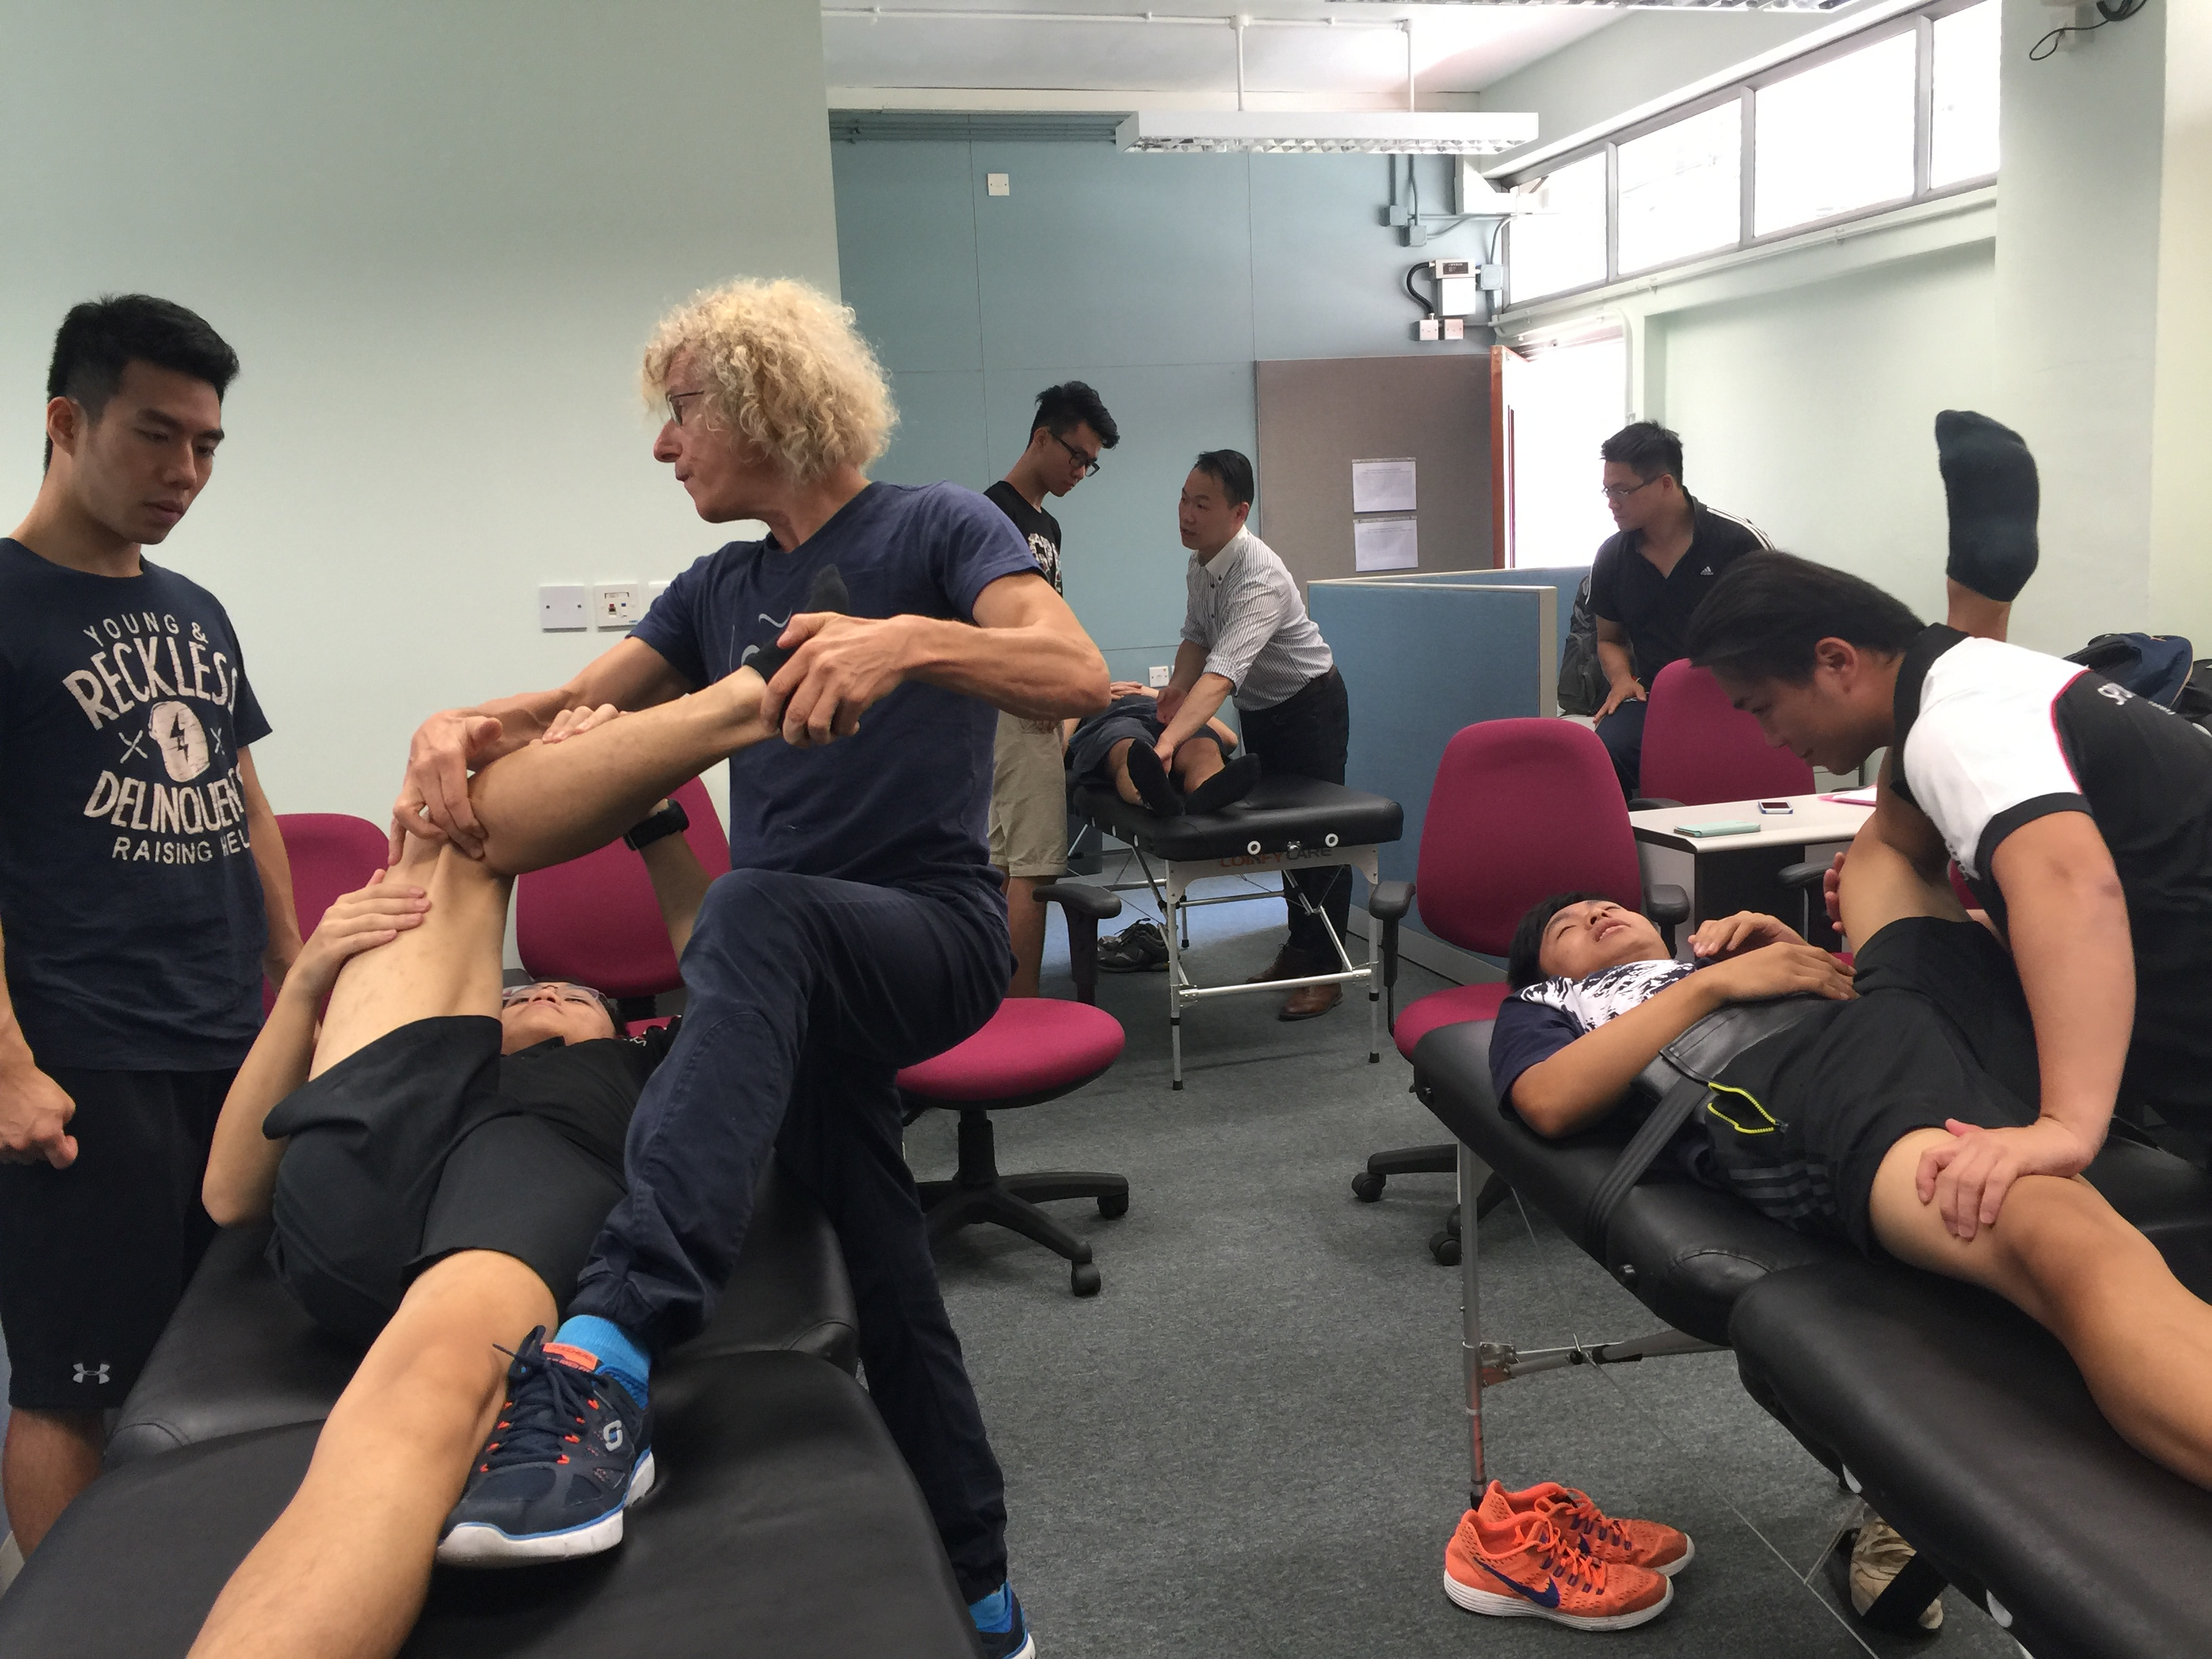 Assisted flexibility training